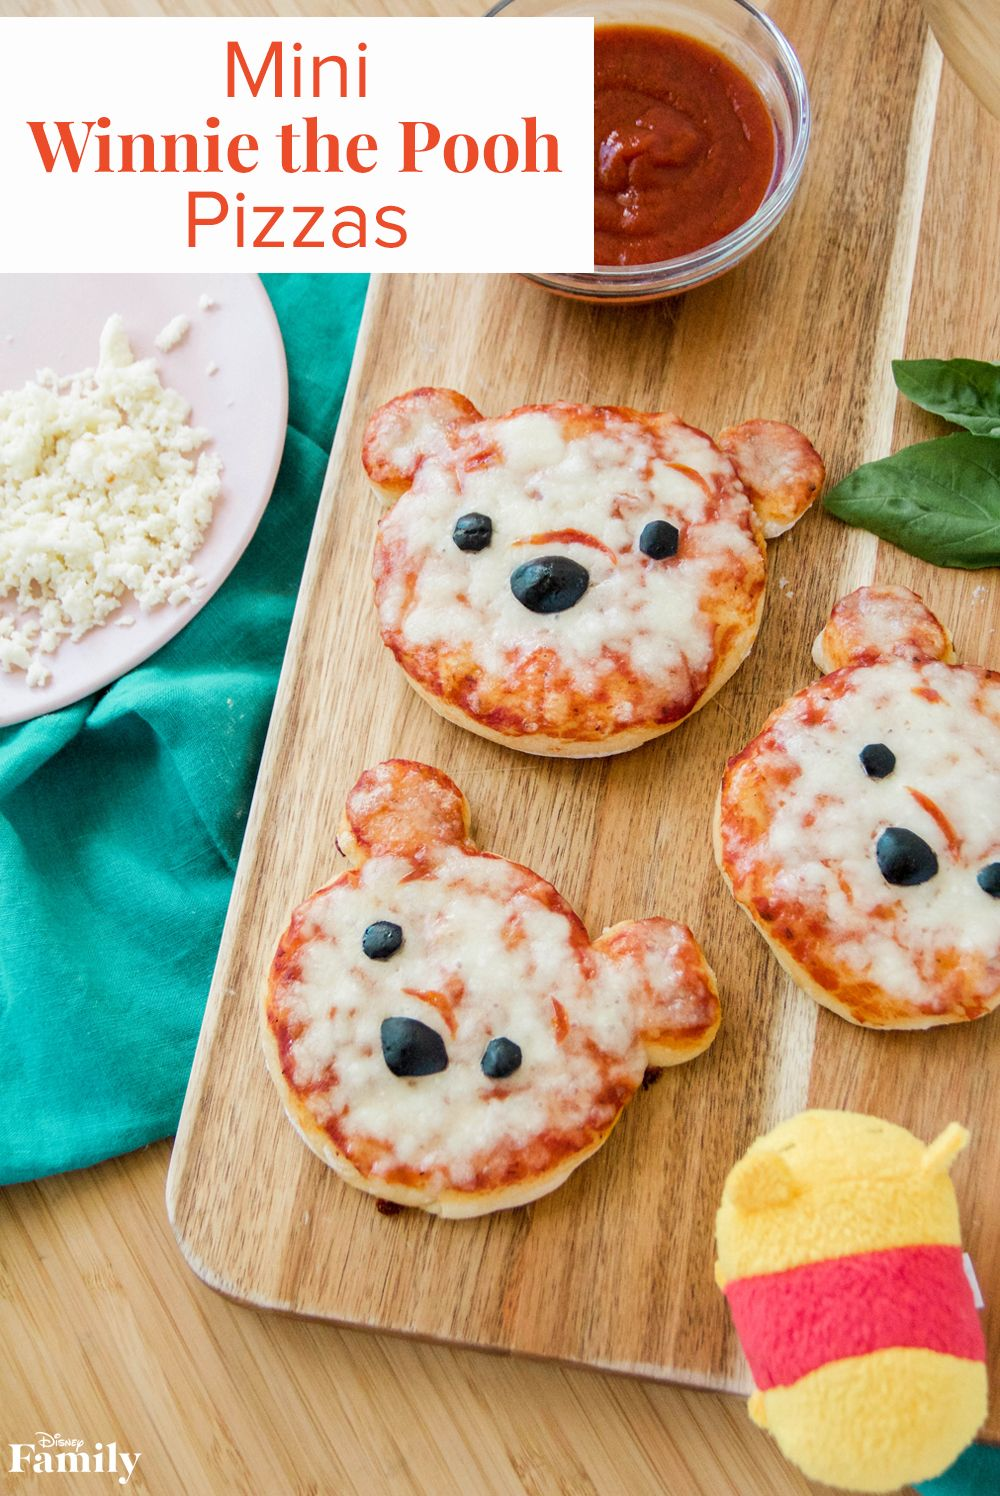 Photo of Serve Up the Cutest Lunch Ever With Mini Winnie the Pooh Pizzas